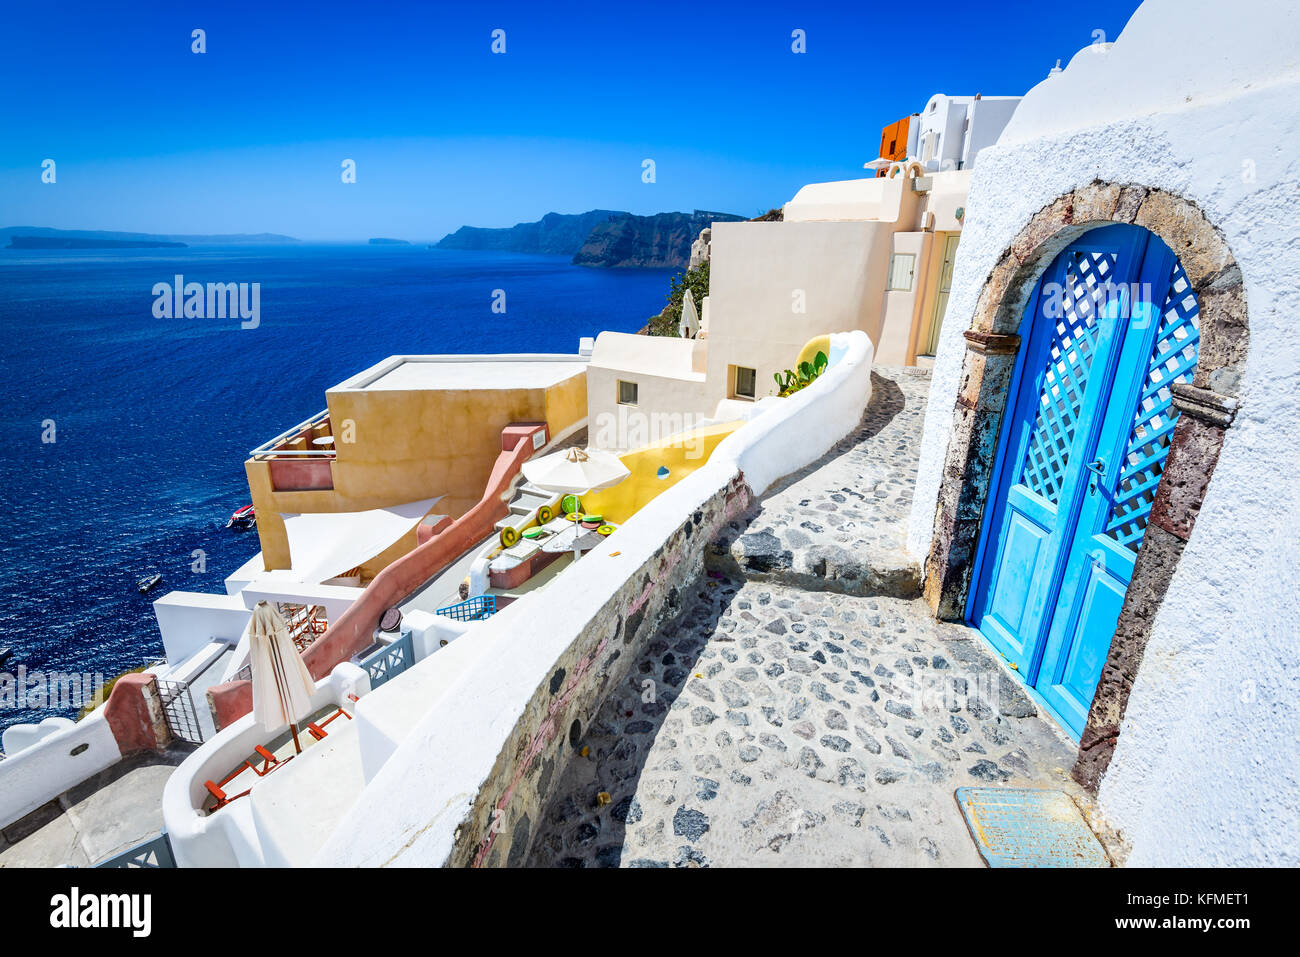 Santorini, Greece. Oia white city narrow street, famous attraction of Greek Cyclades Islands, Aegean Sea. - Stock Image